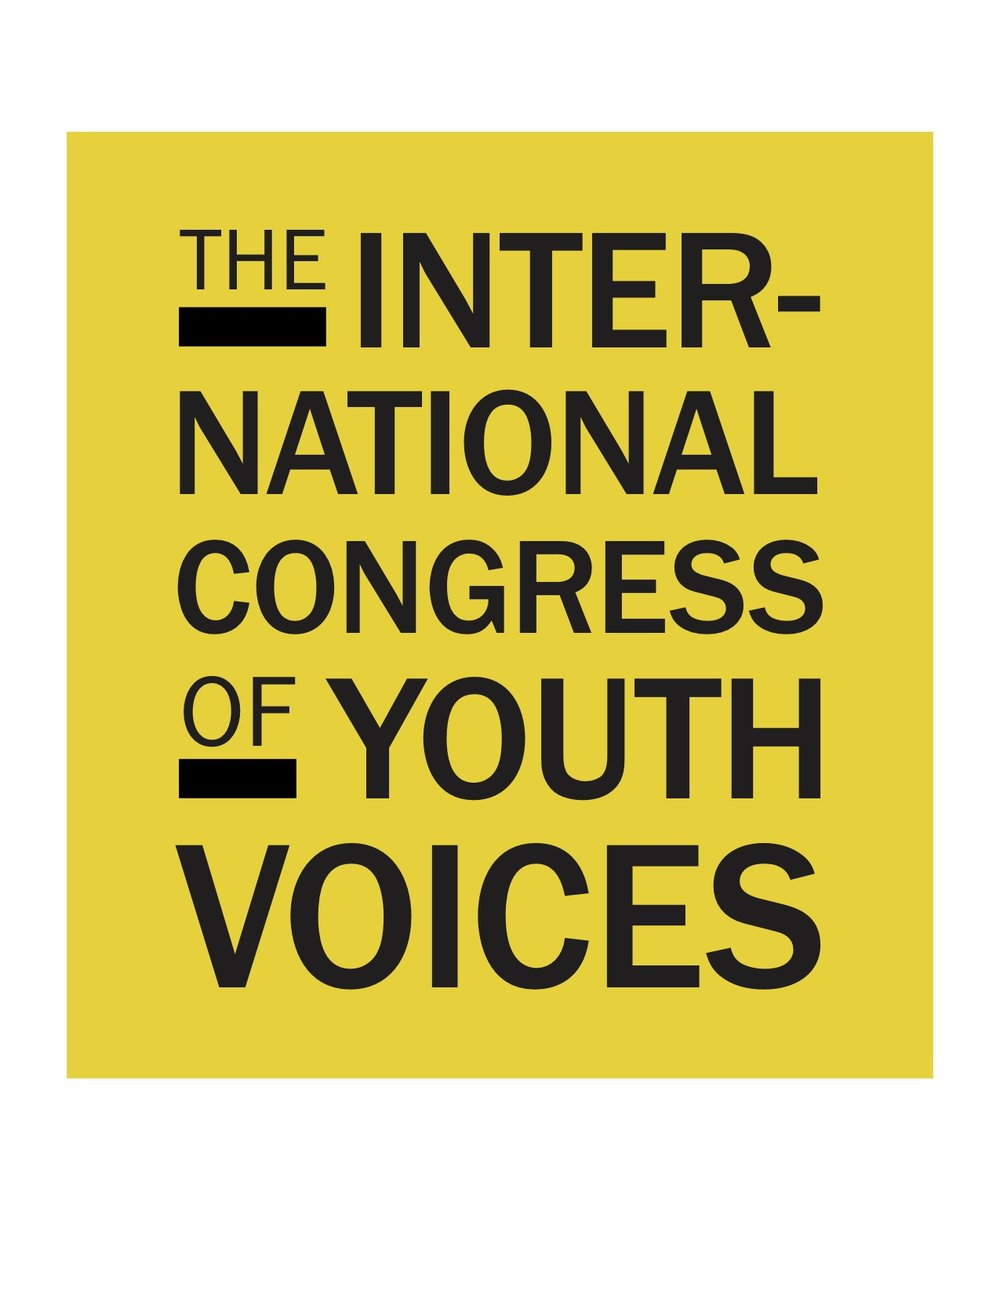 International Congress of Youth Voices